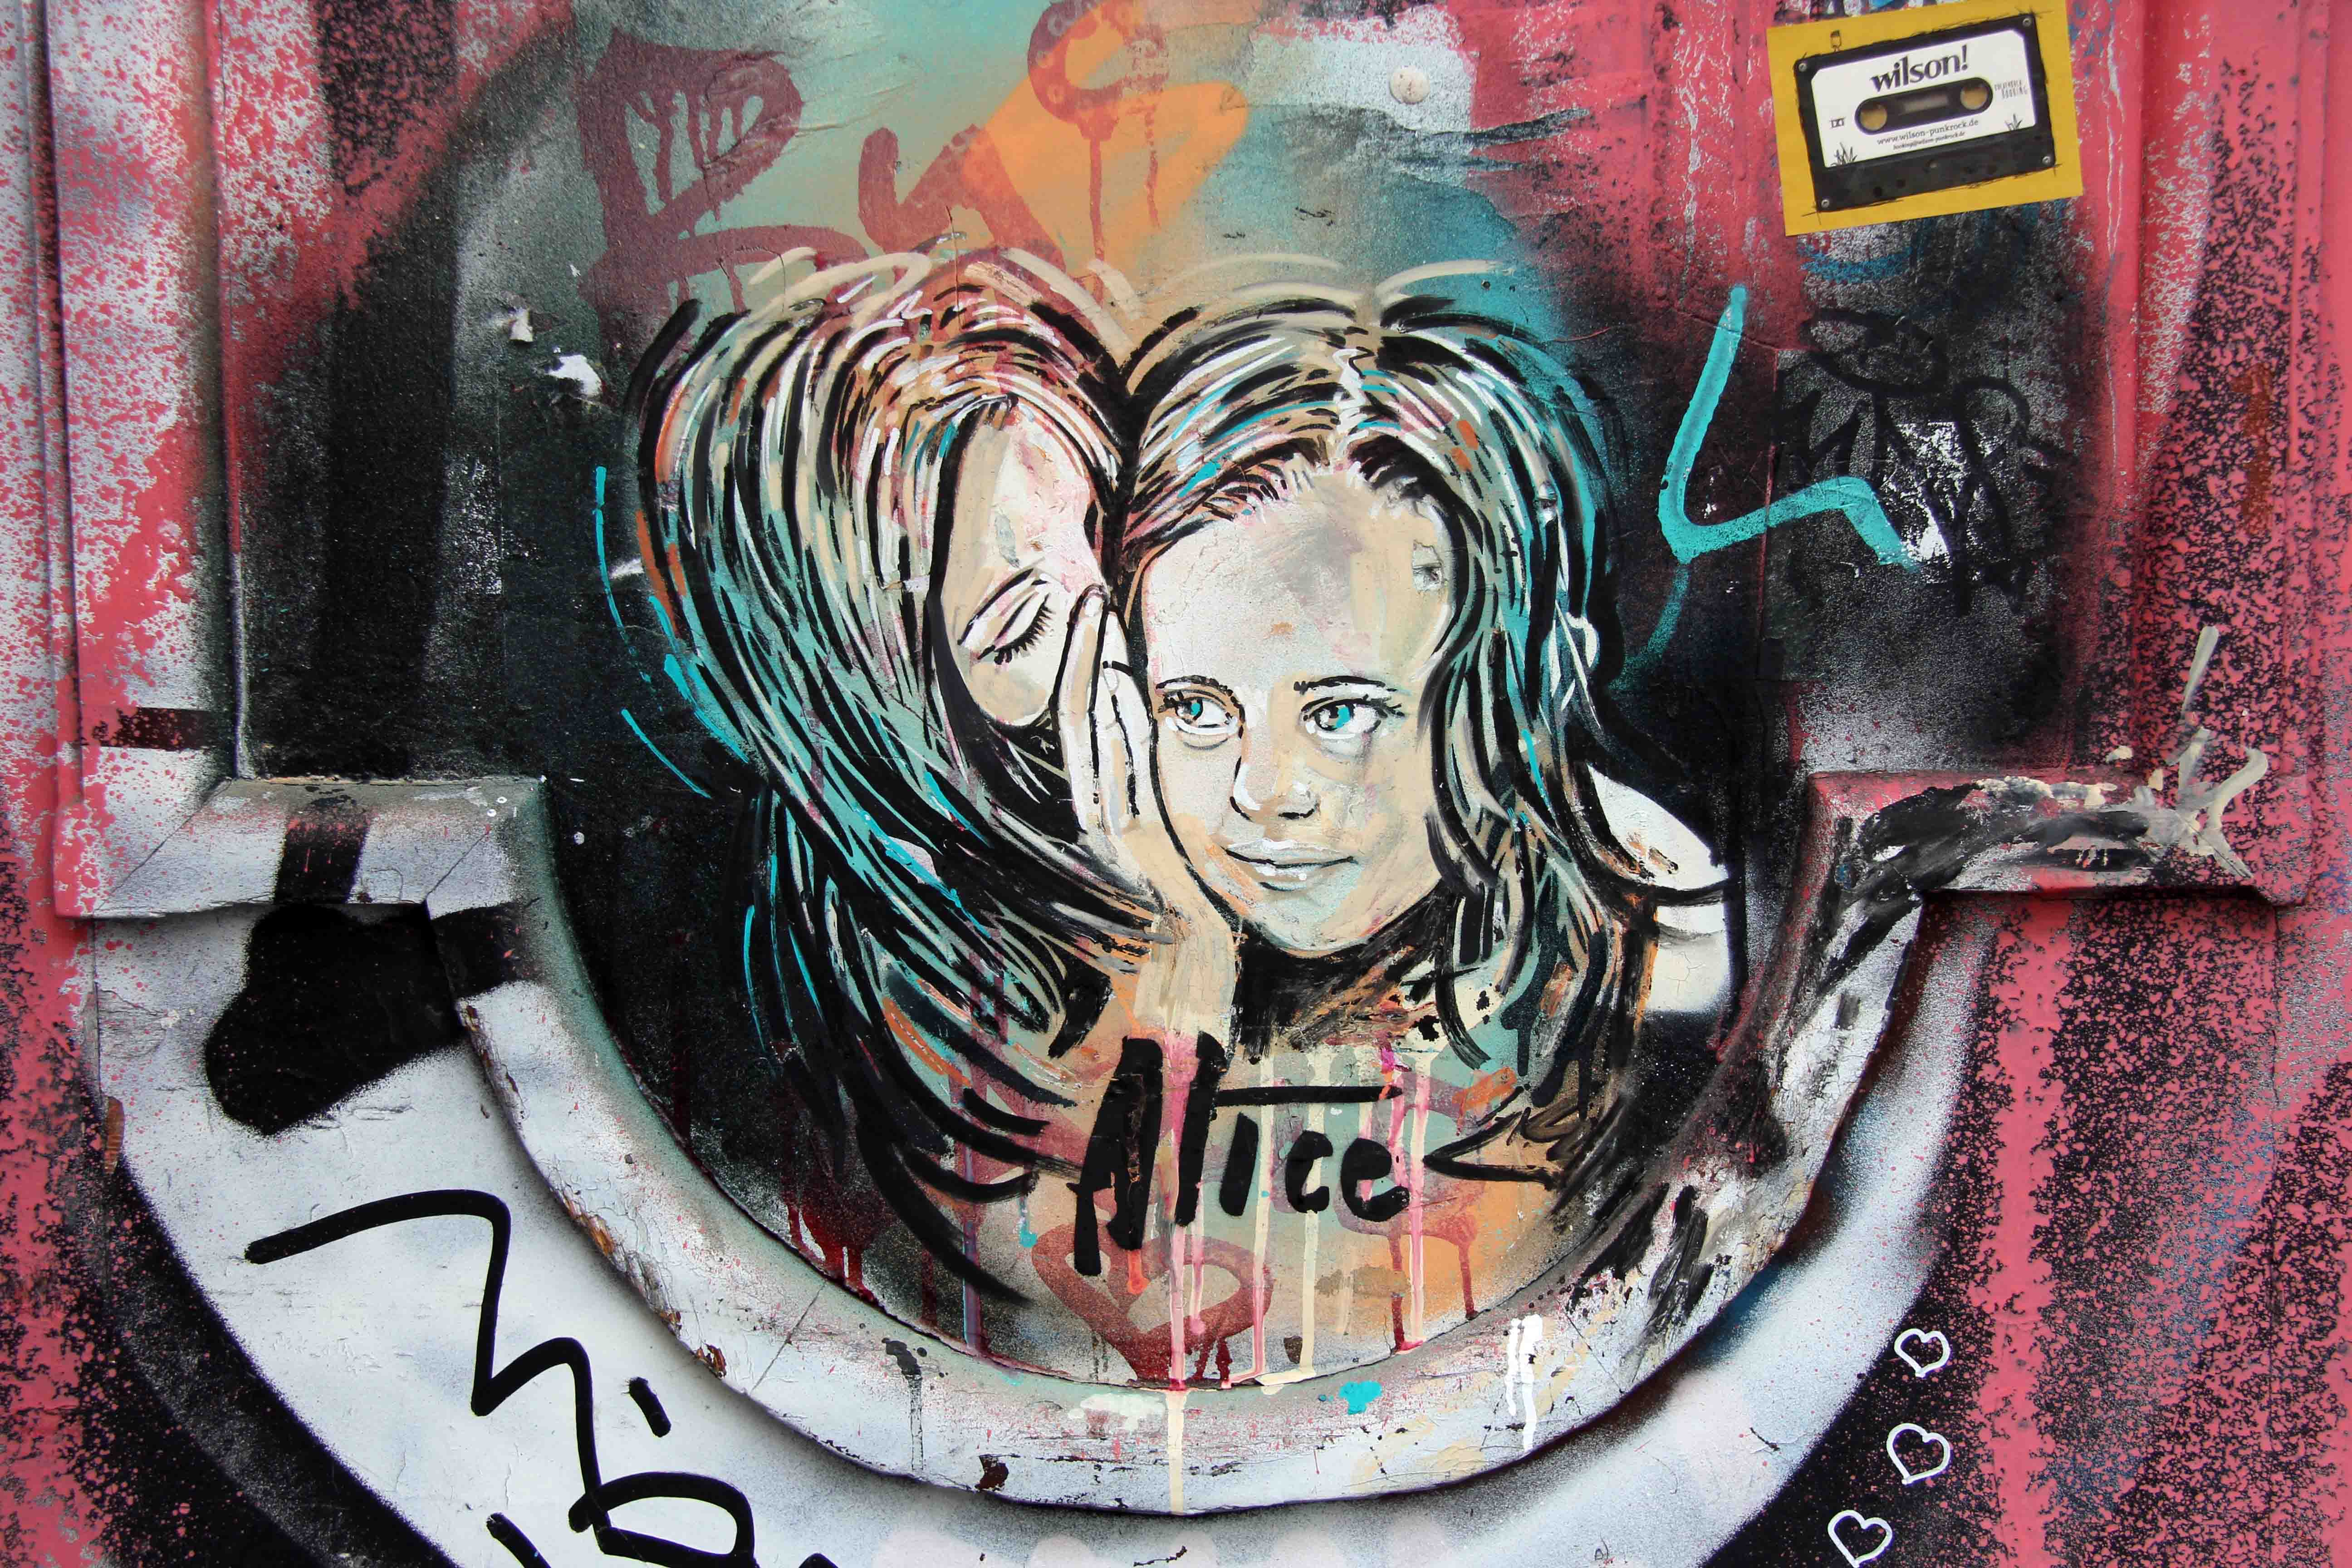 Do You Wanna Know A Secret? - Street Art by AliCé in Berlin